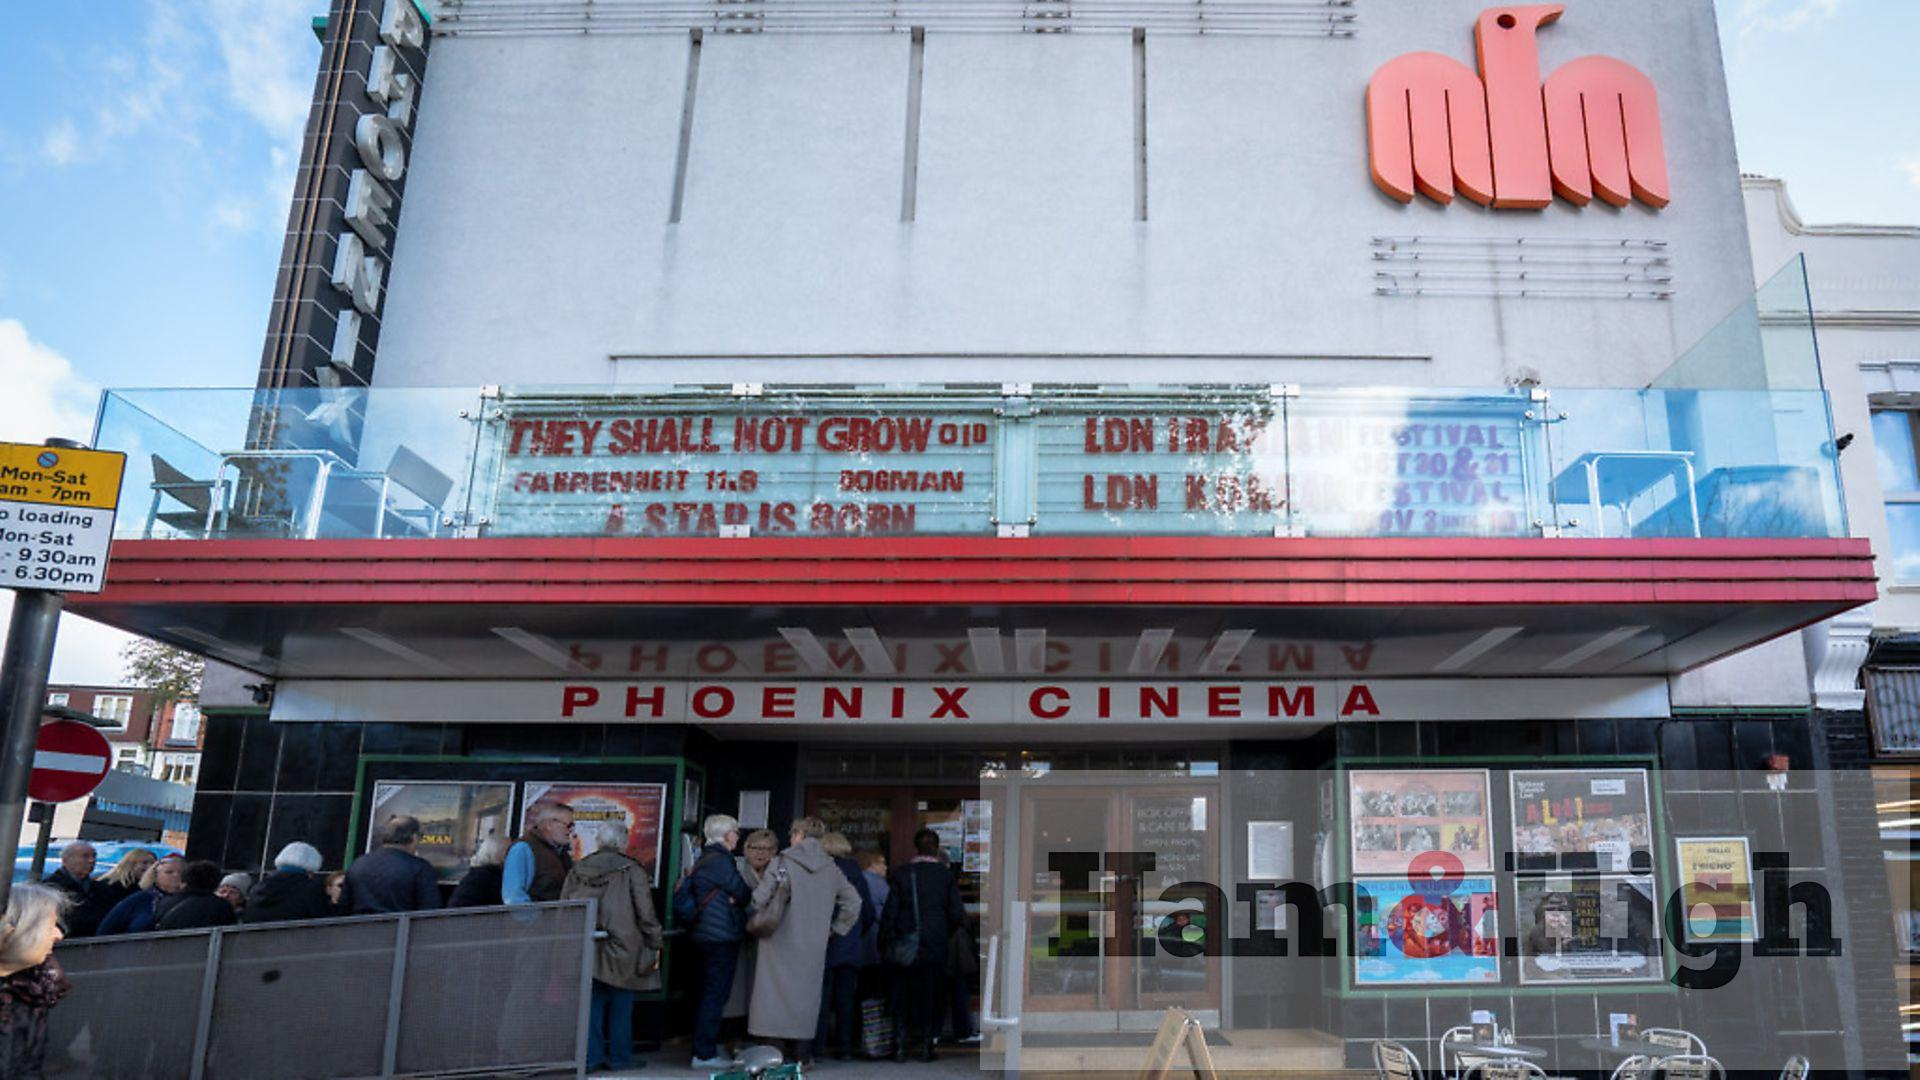 Roundhouse and Phoenix Cinema awarded grants to help them reopen